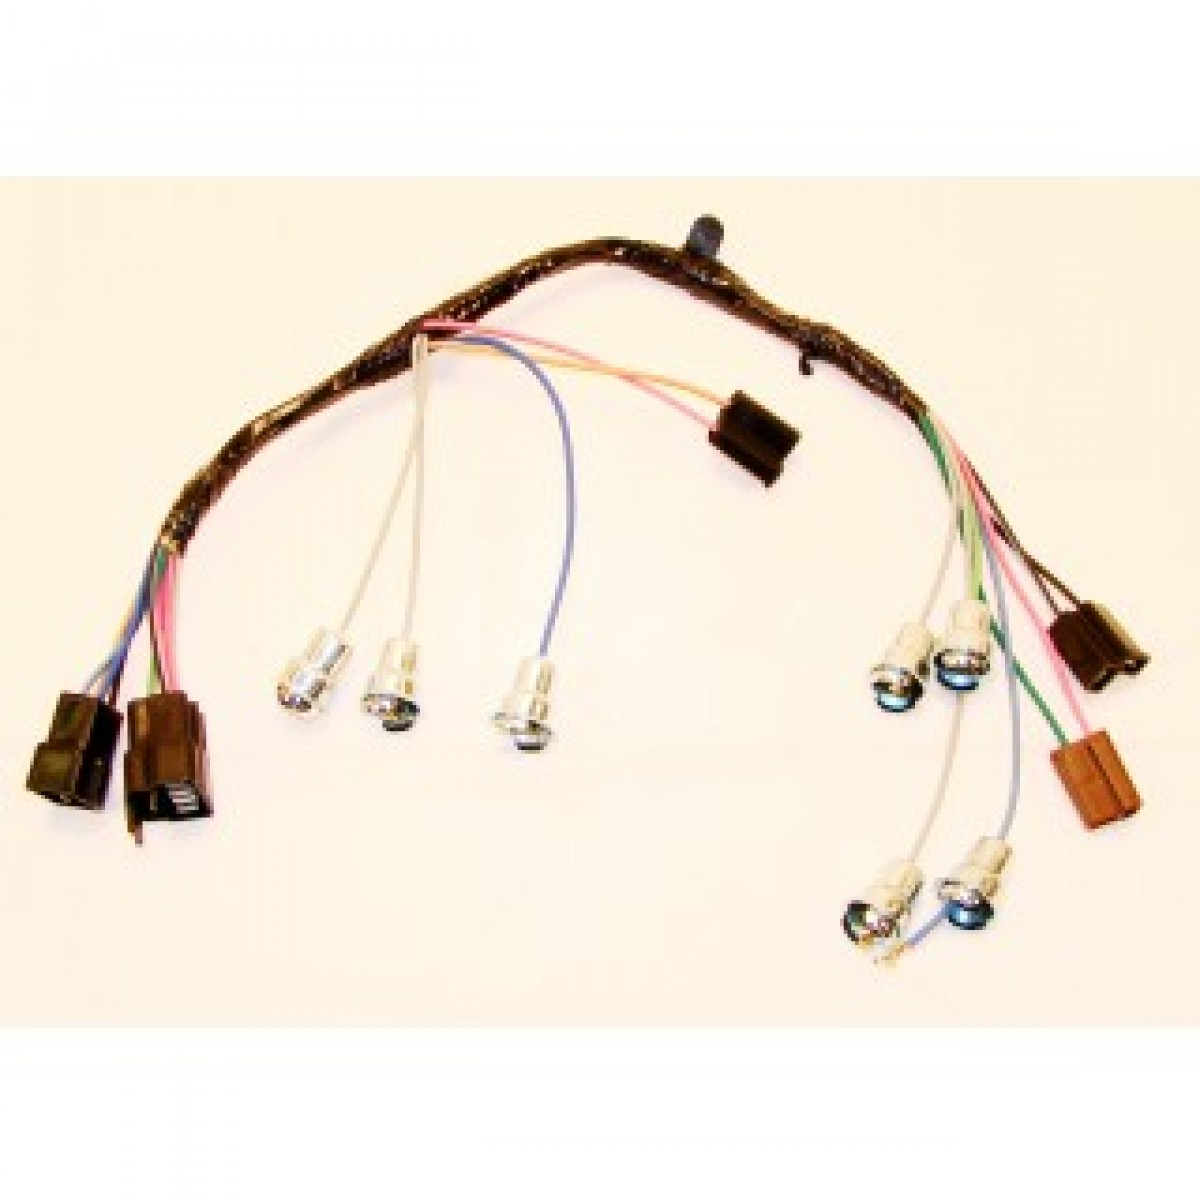 1963 C 10 Wiring Harness Library Chevy Steering Column Diagram